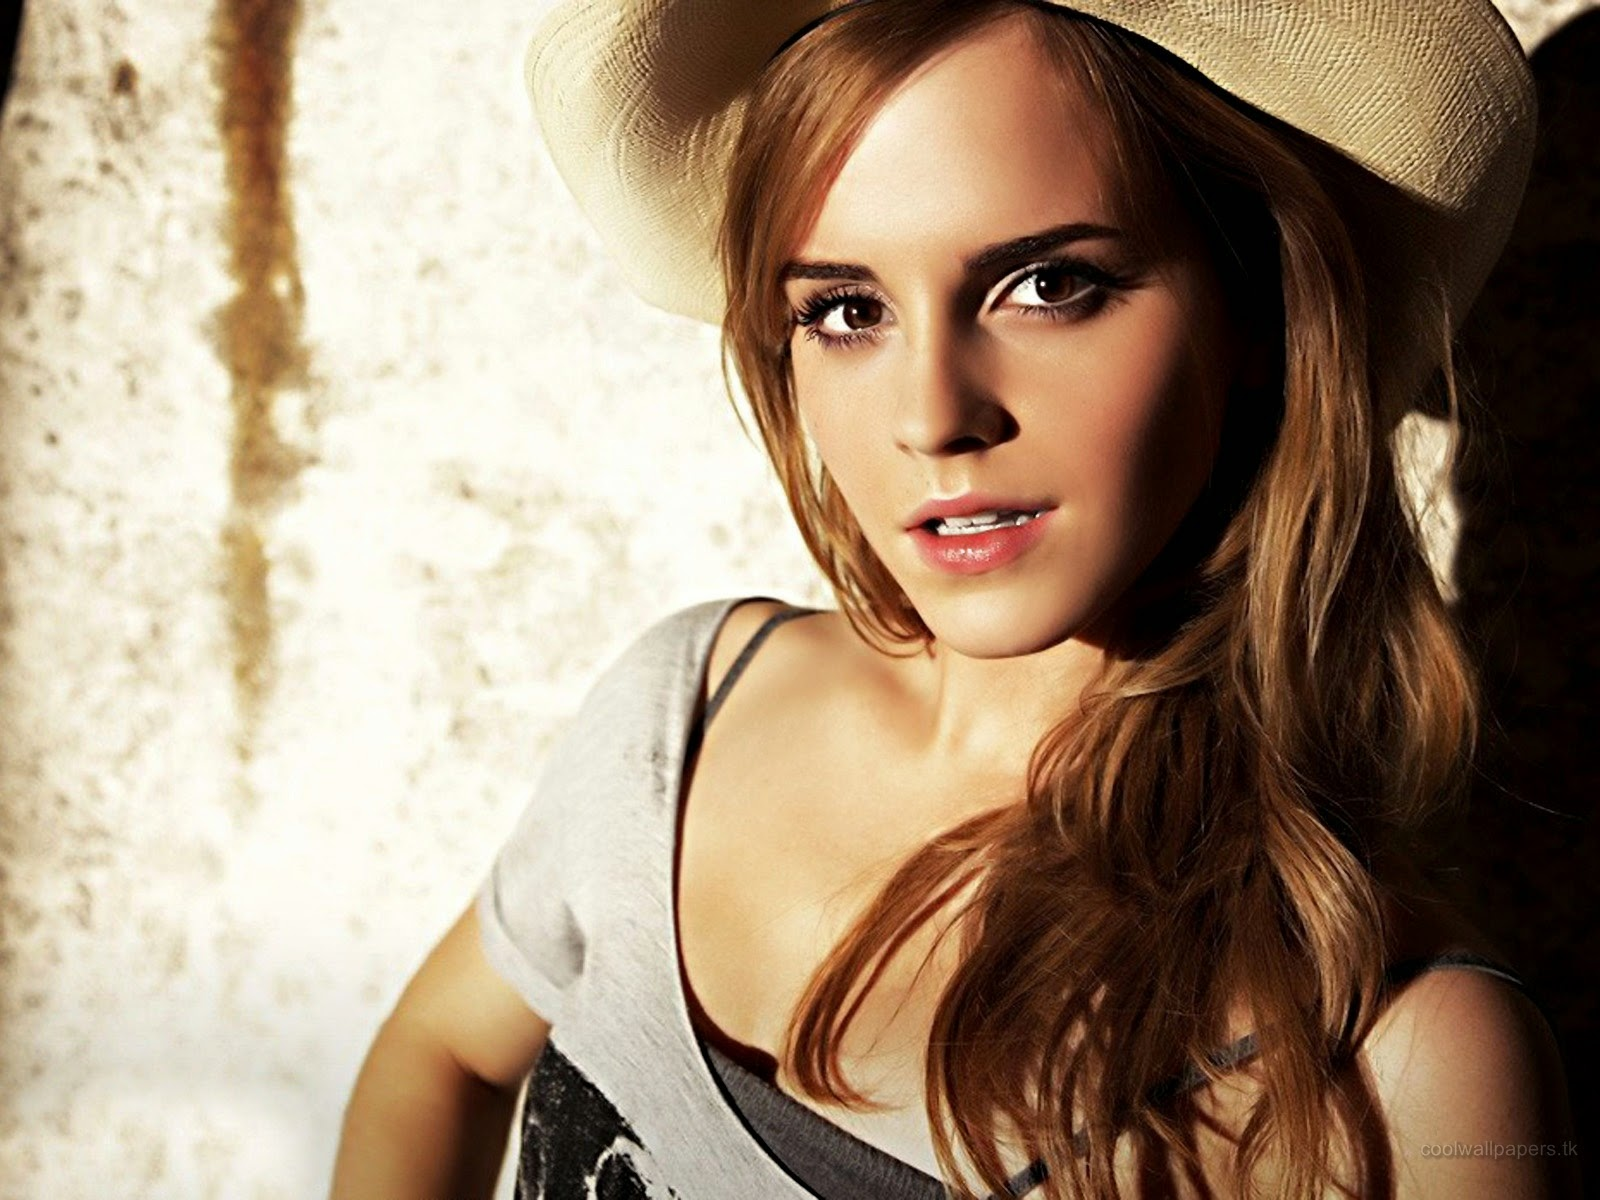 emma watson hd hot - photo #17